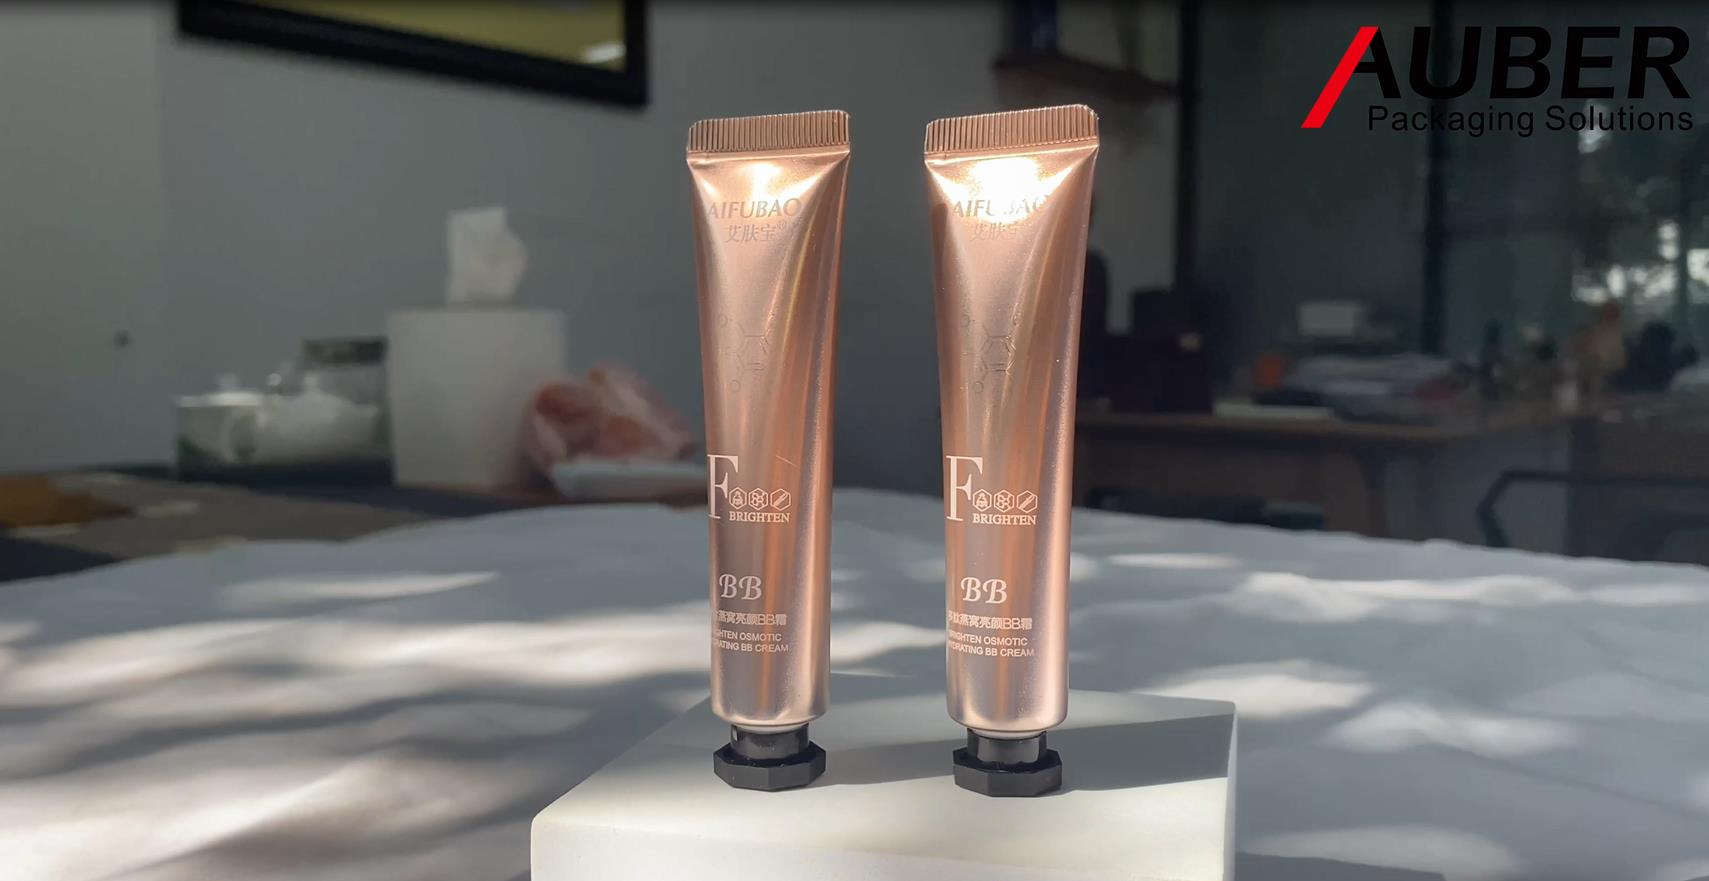 Auber Gradual Changing Color Metal Squeeze Tubes in Dia.19mm for Eye Cream with Black Octagonal Cap